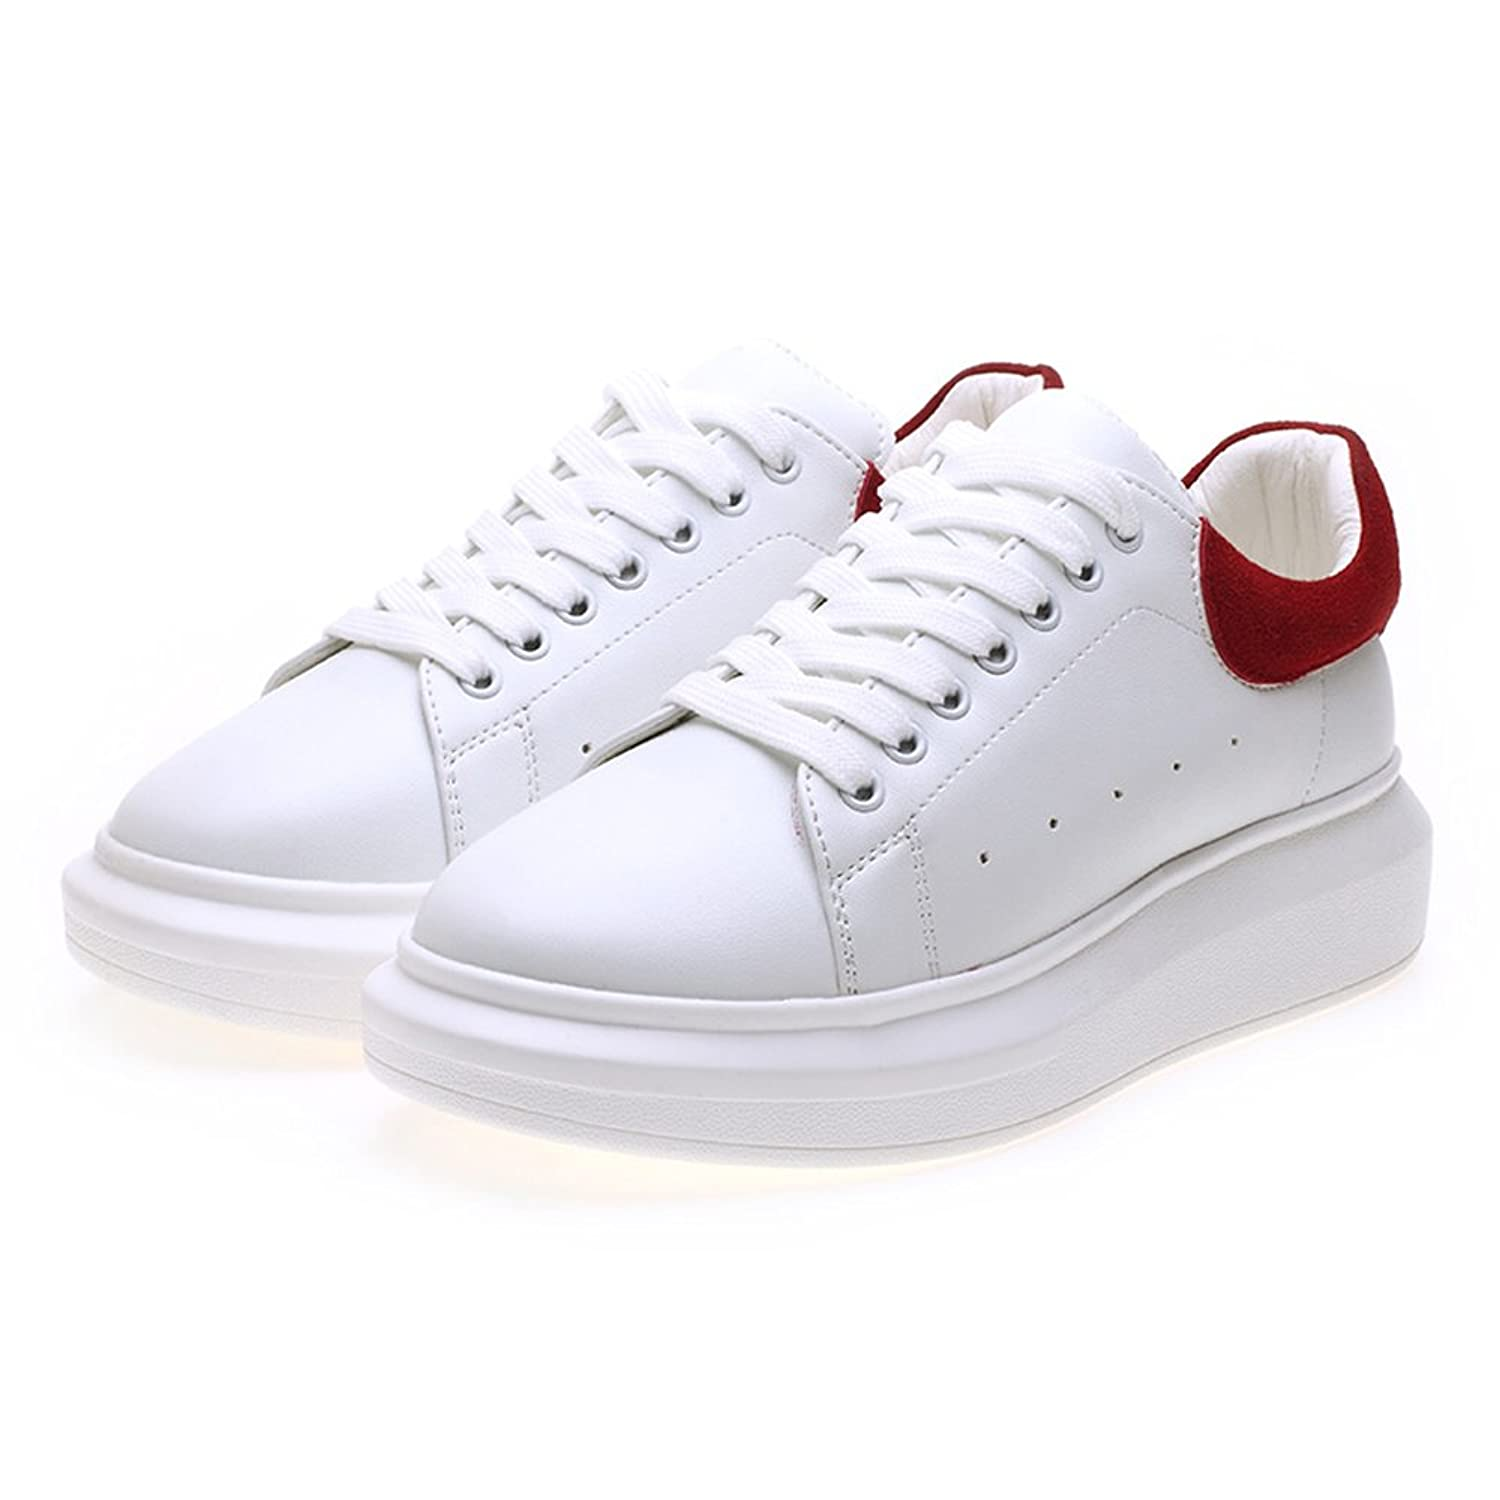 f1e798fe130 50%OFF The thickness of bottom plate of female casual shoes ...